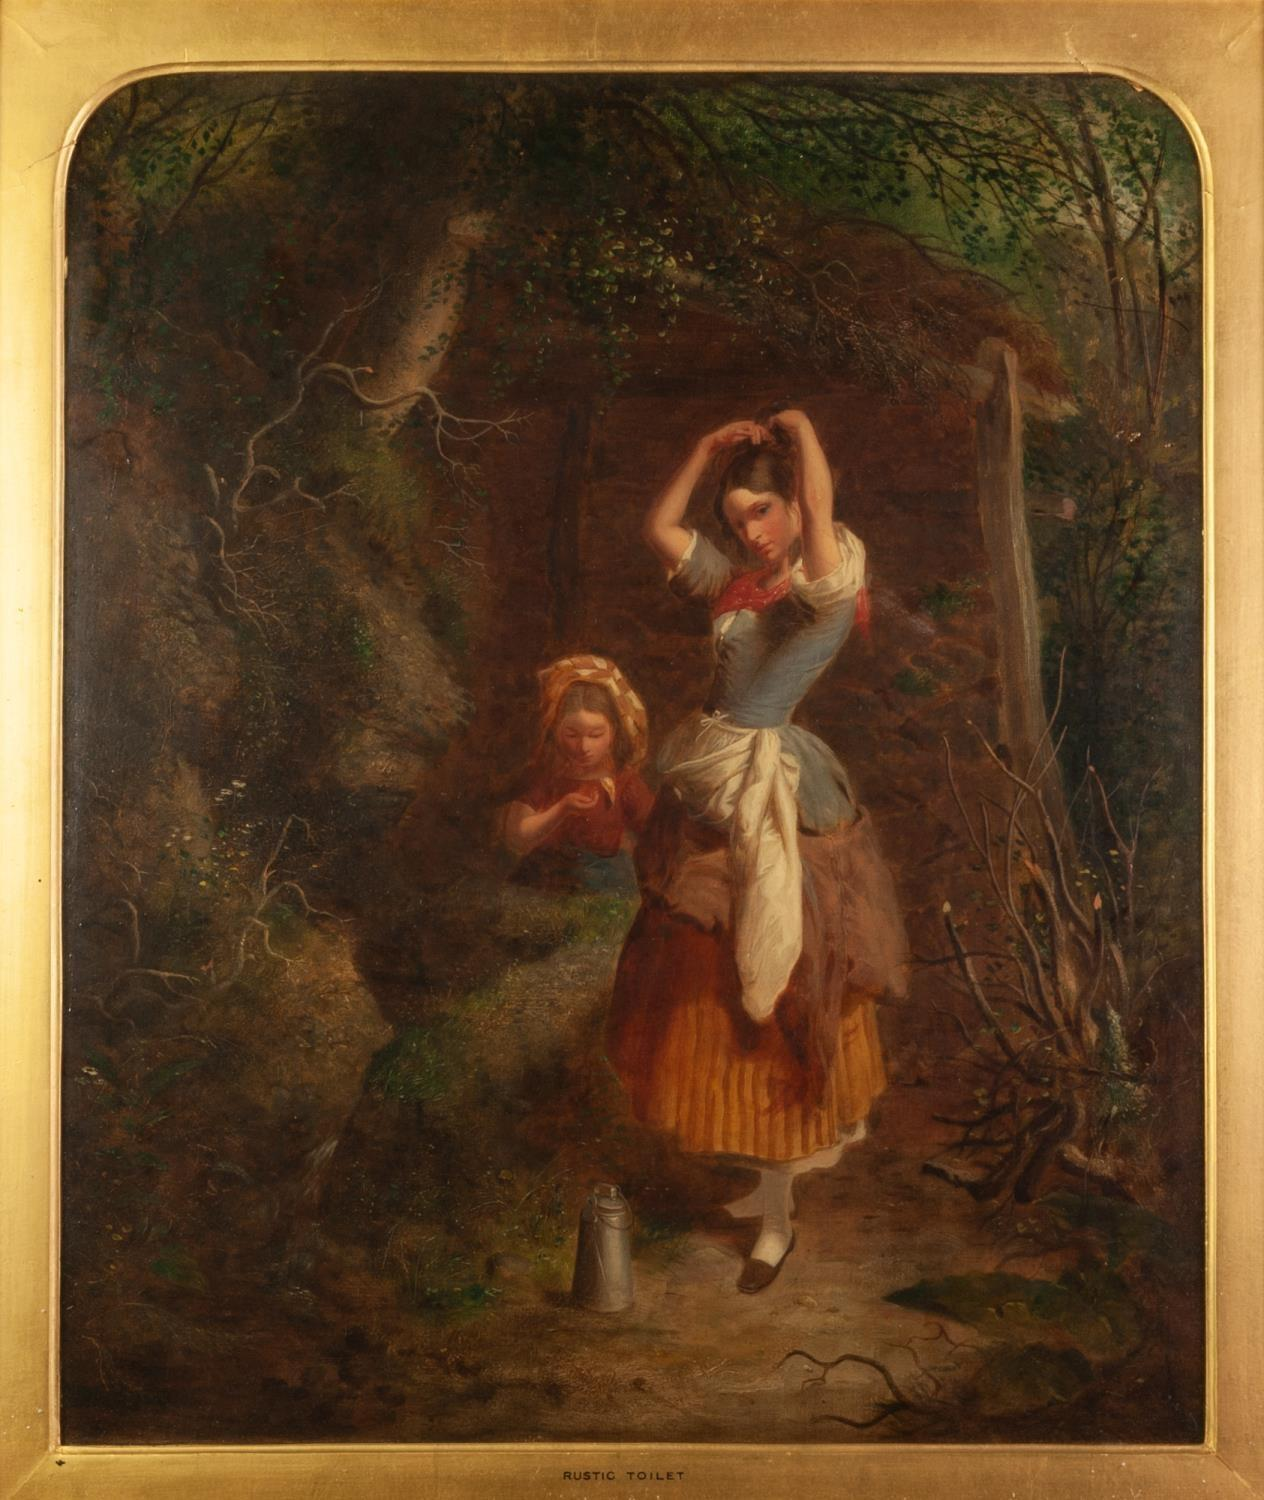 Lot 267 - UNATTRIBUTED (VICTORIAN SCHOOL) OIL PAINTING ON CANVAS ?Rustic Toilet? two girl on a woodland path